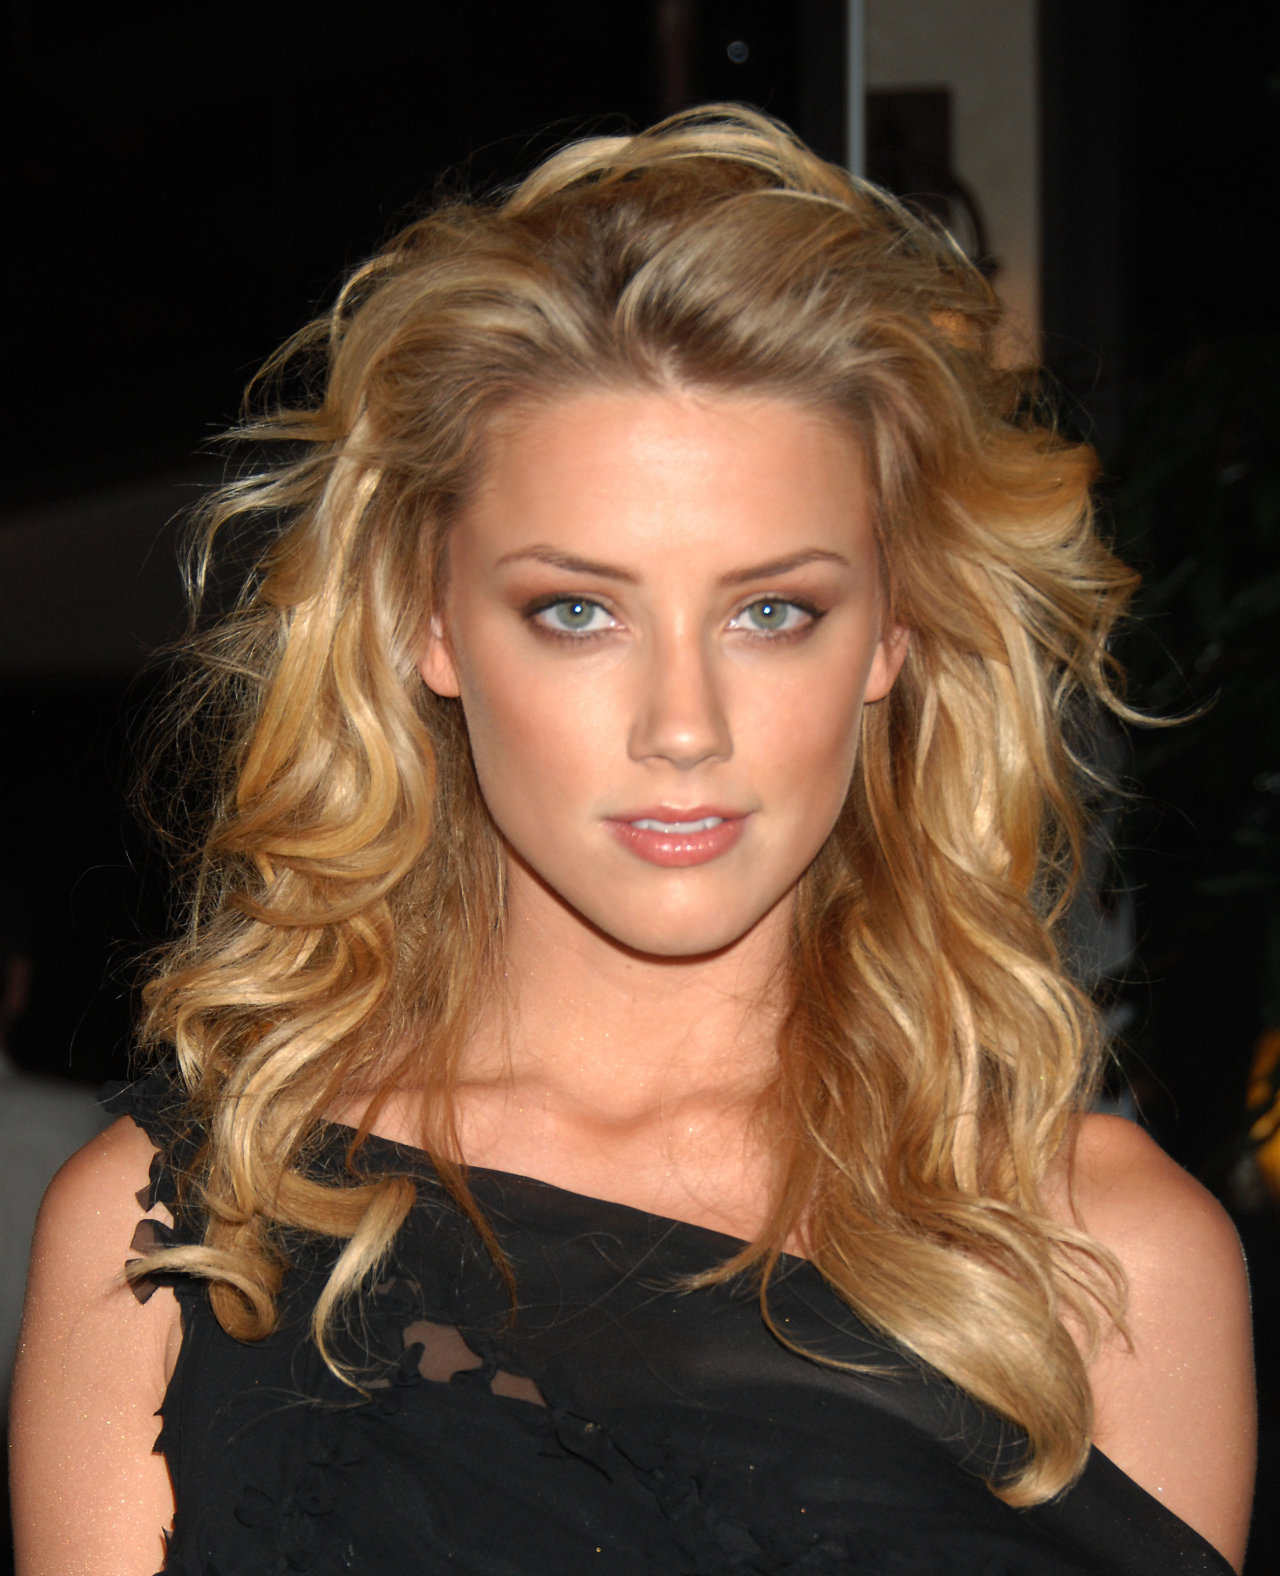 http://4.bp.blogspot.com/-Z1DzyygfGDw/TbmyO80tXqI/AAAAAAAAOQI/cmP1FC9laTQ/s1600/Amber-Heard-Hollywood-Actress-Wallpapers-9.jpg